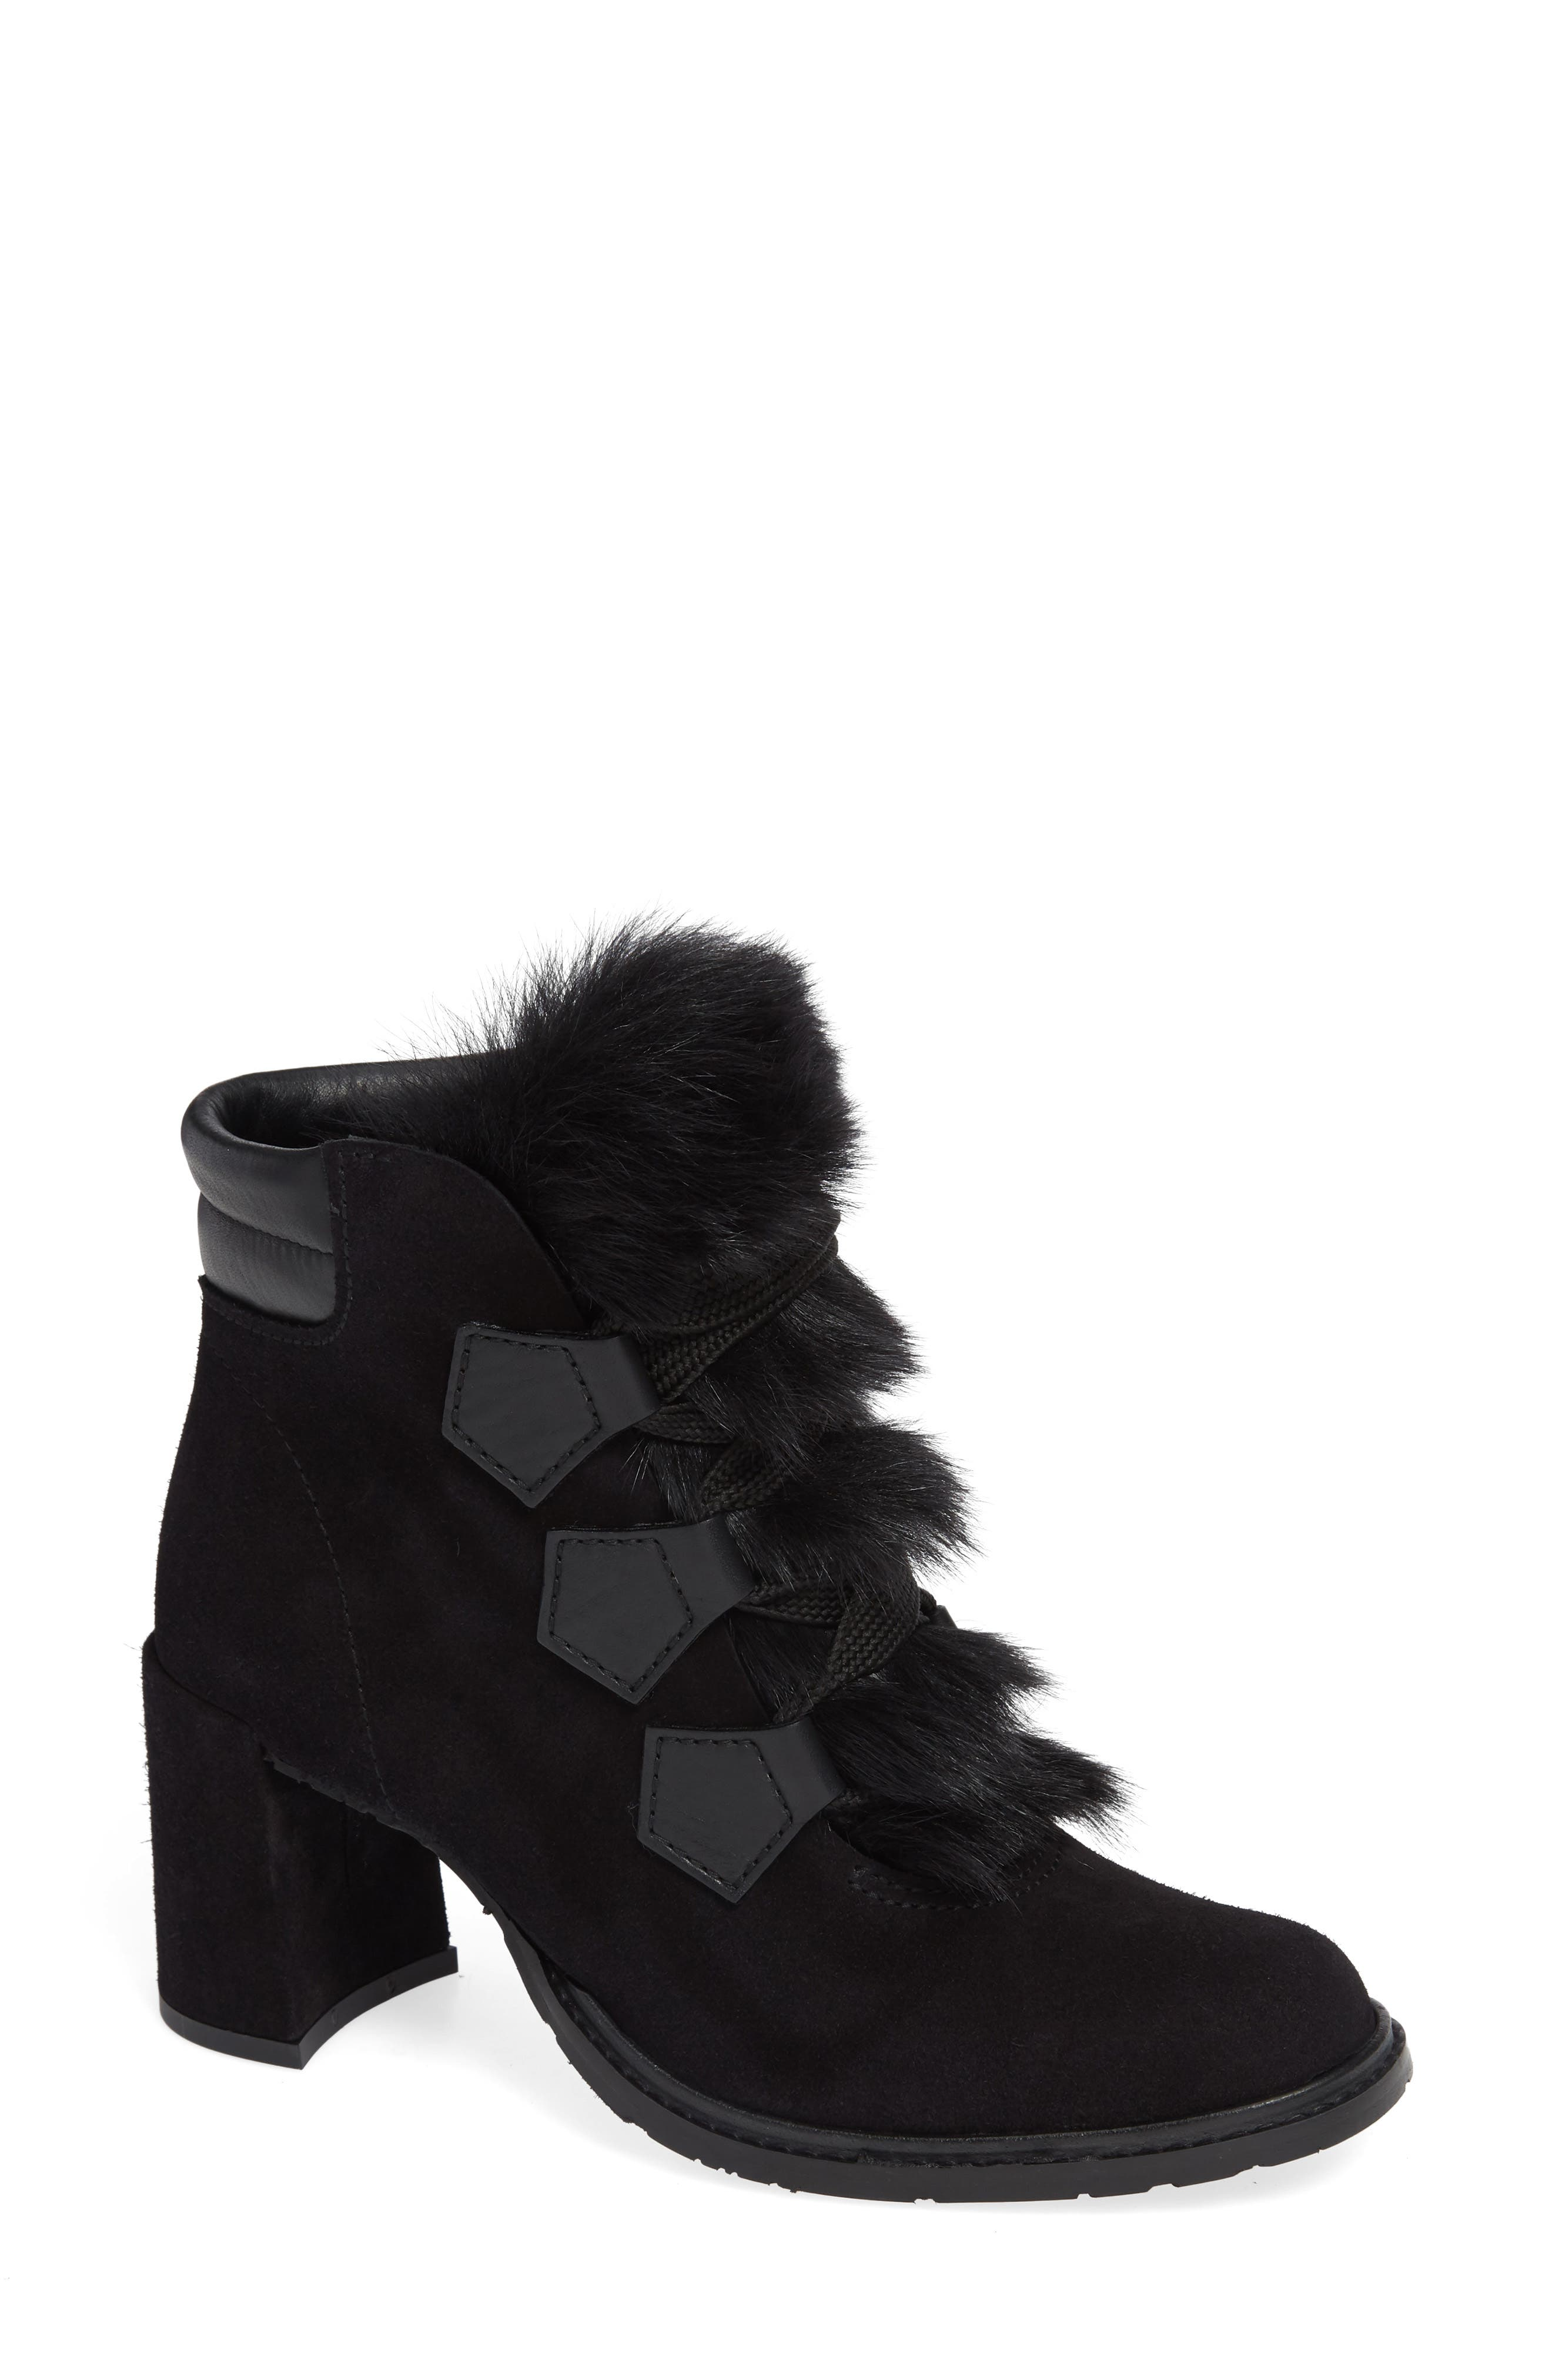 Wilmette Bootie with Genuine Shearling Trim,                             Main thumbnail 1, color,                             BLACK CHURRA